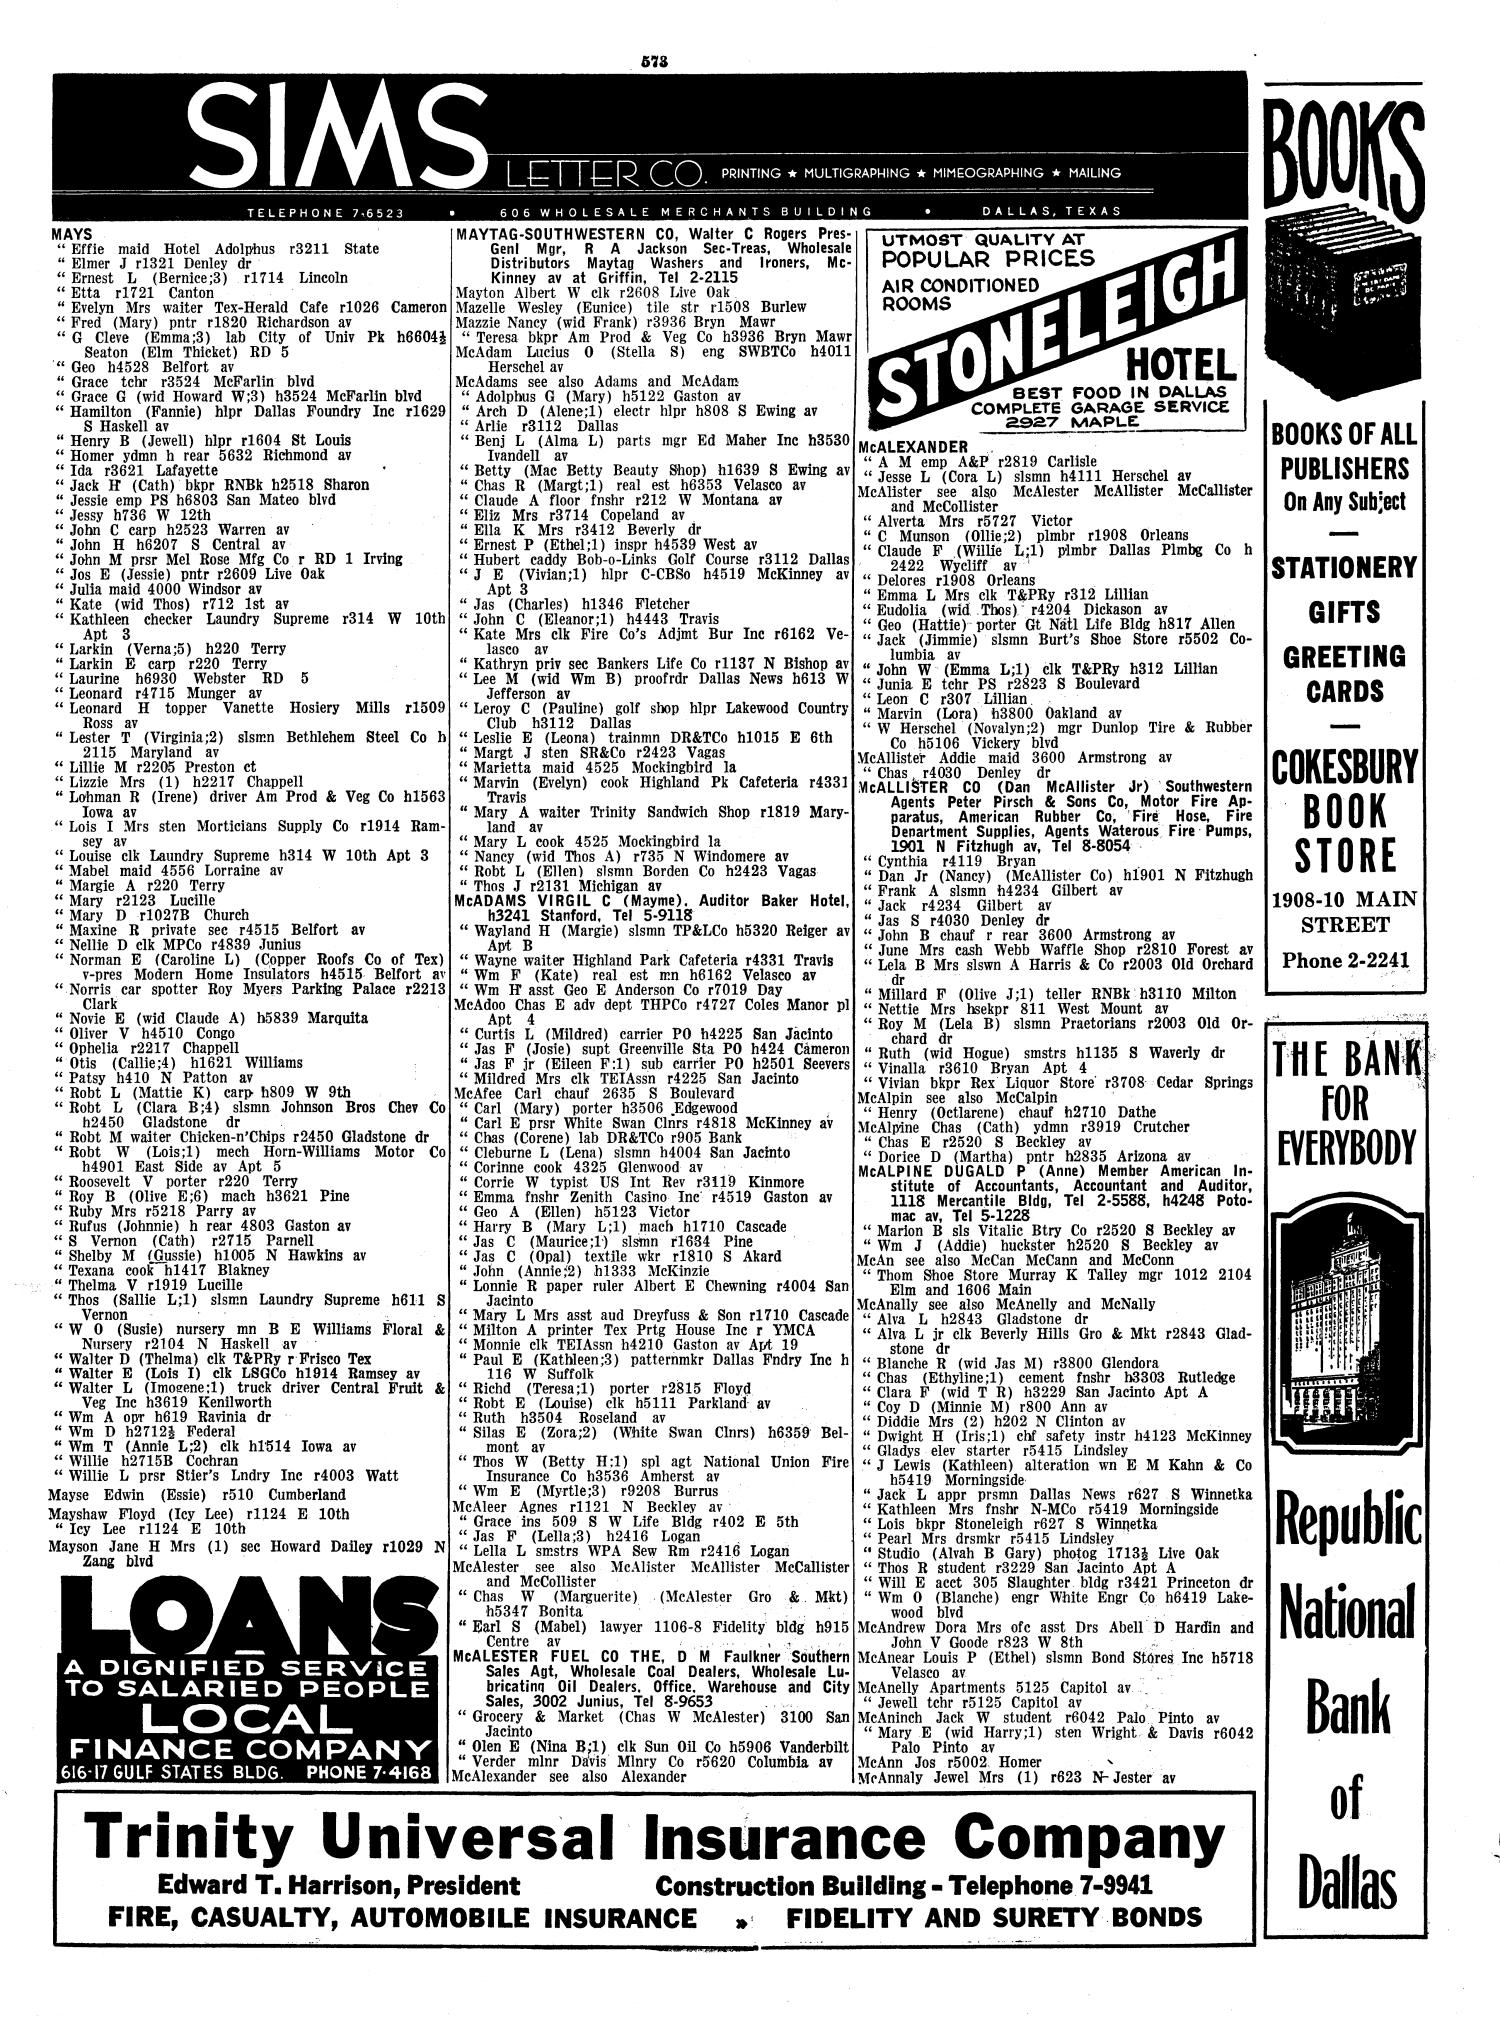 Dallas City Directory 1939 Page 573 The Portal To Texas History